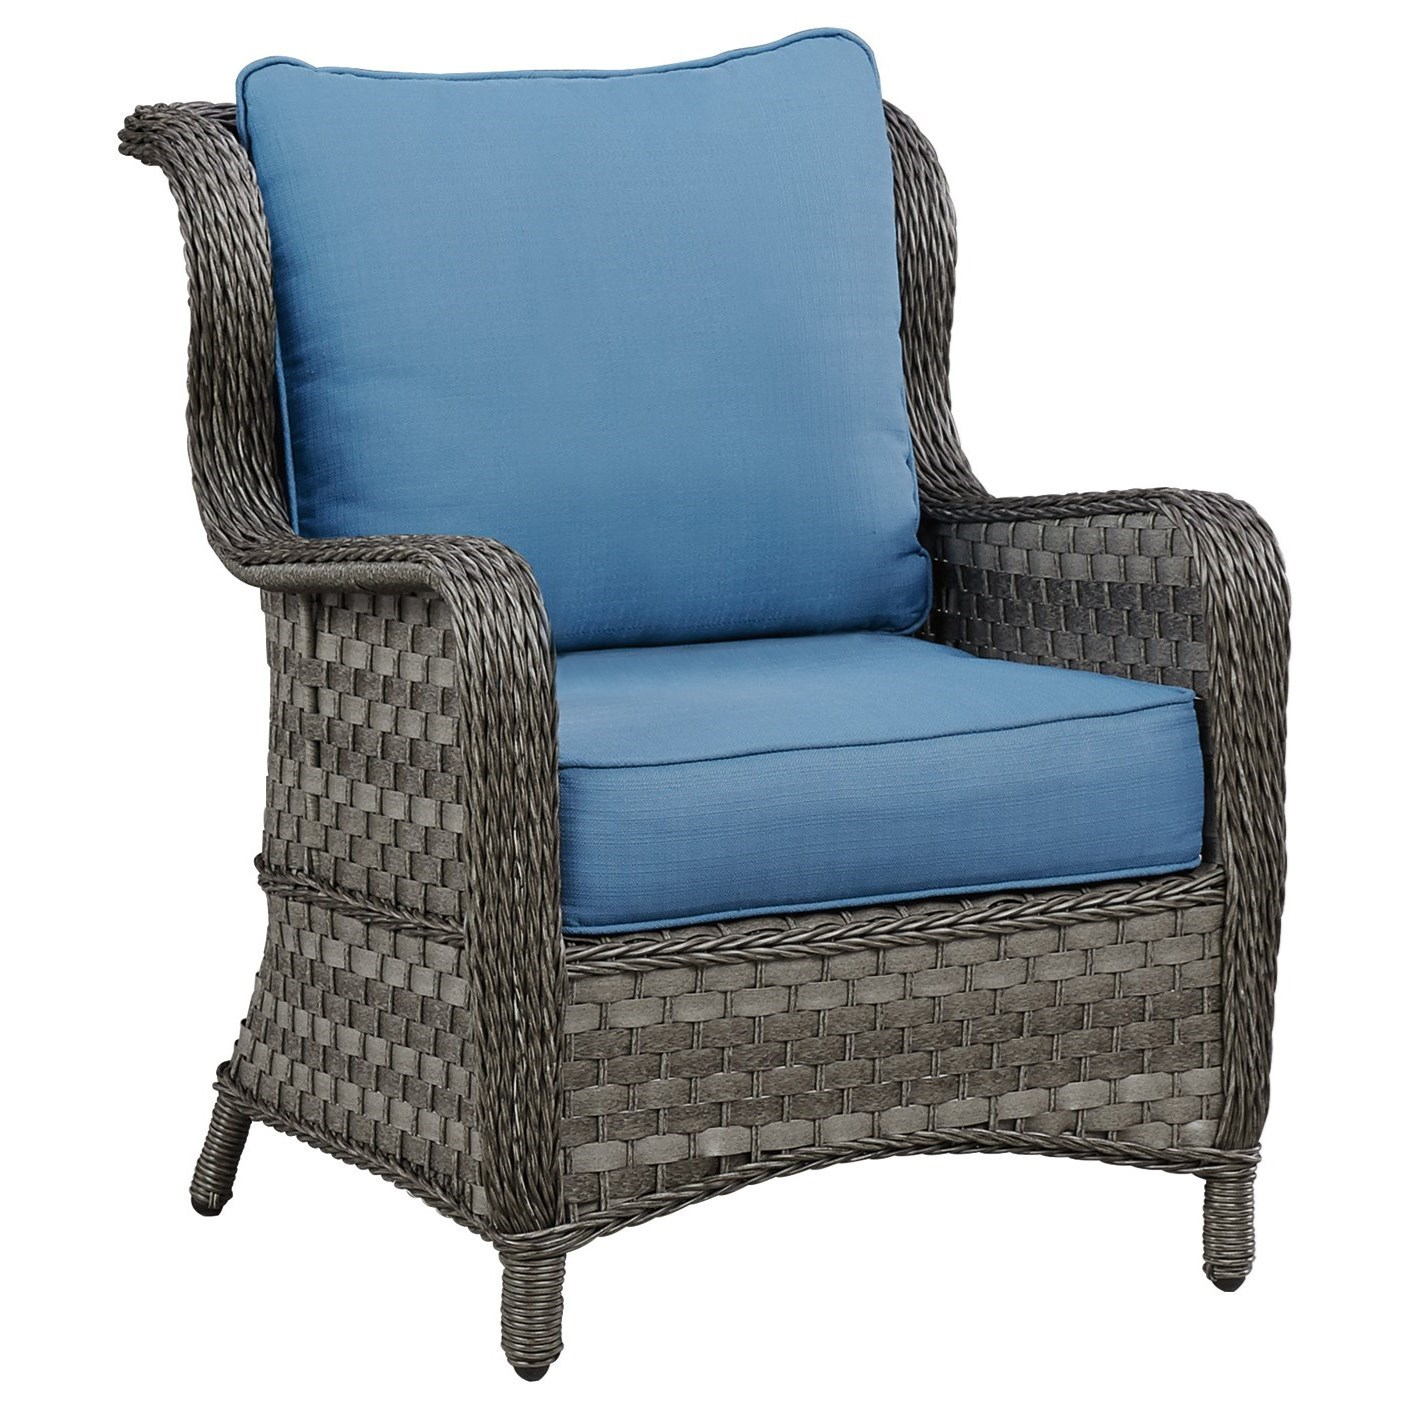 Abbots Court Outdoor Lounge Chair w/ Cushion by Signature Design at Fisher Home Furnishings